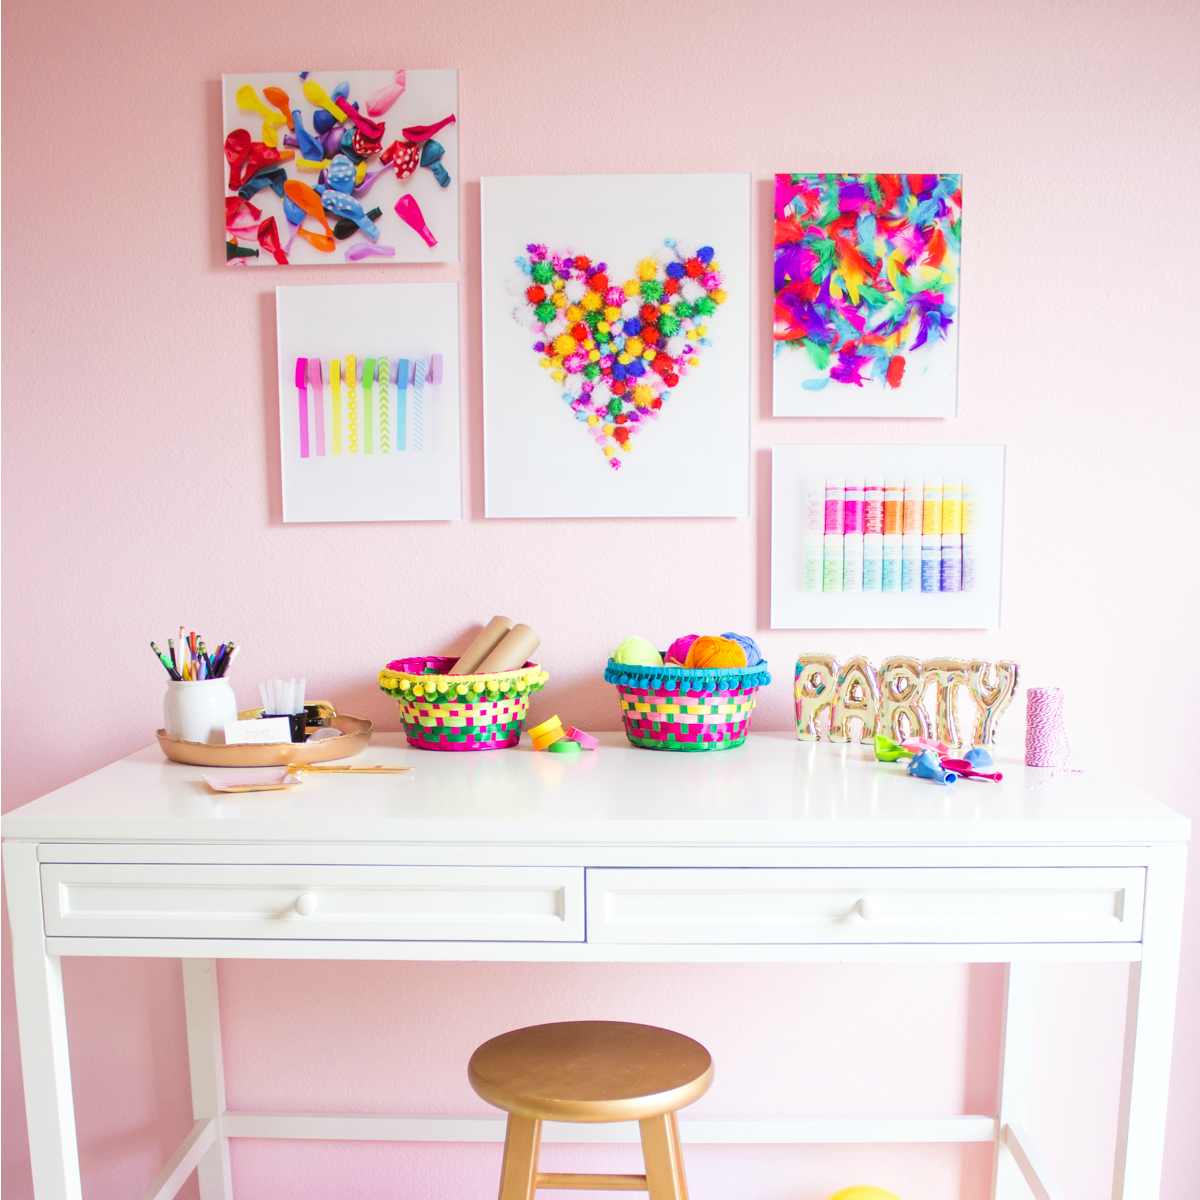 pink-craft-room-with-colorful-wall-art